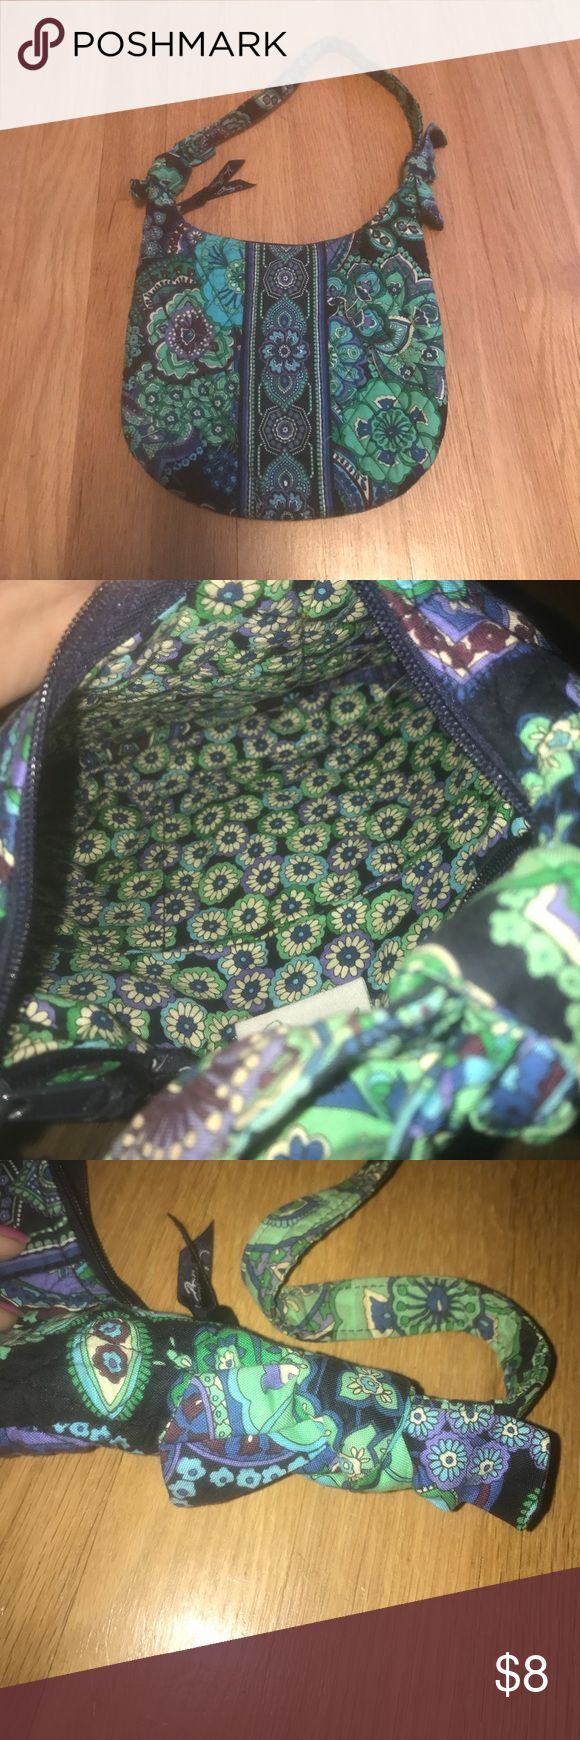 PETITE 🎀 BAG Vera Bradley  petite purse great for a younger girl or a woman who carries small bags. In great condition Vera Bradley Bags